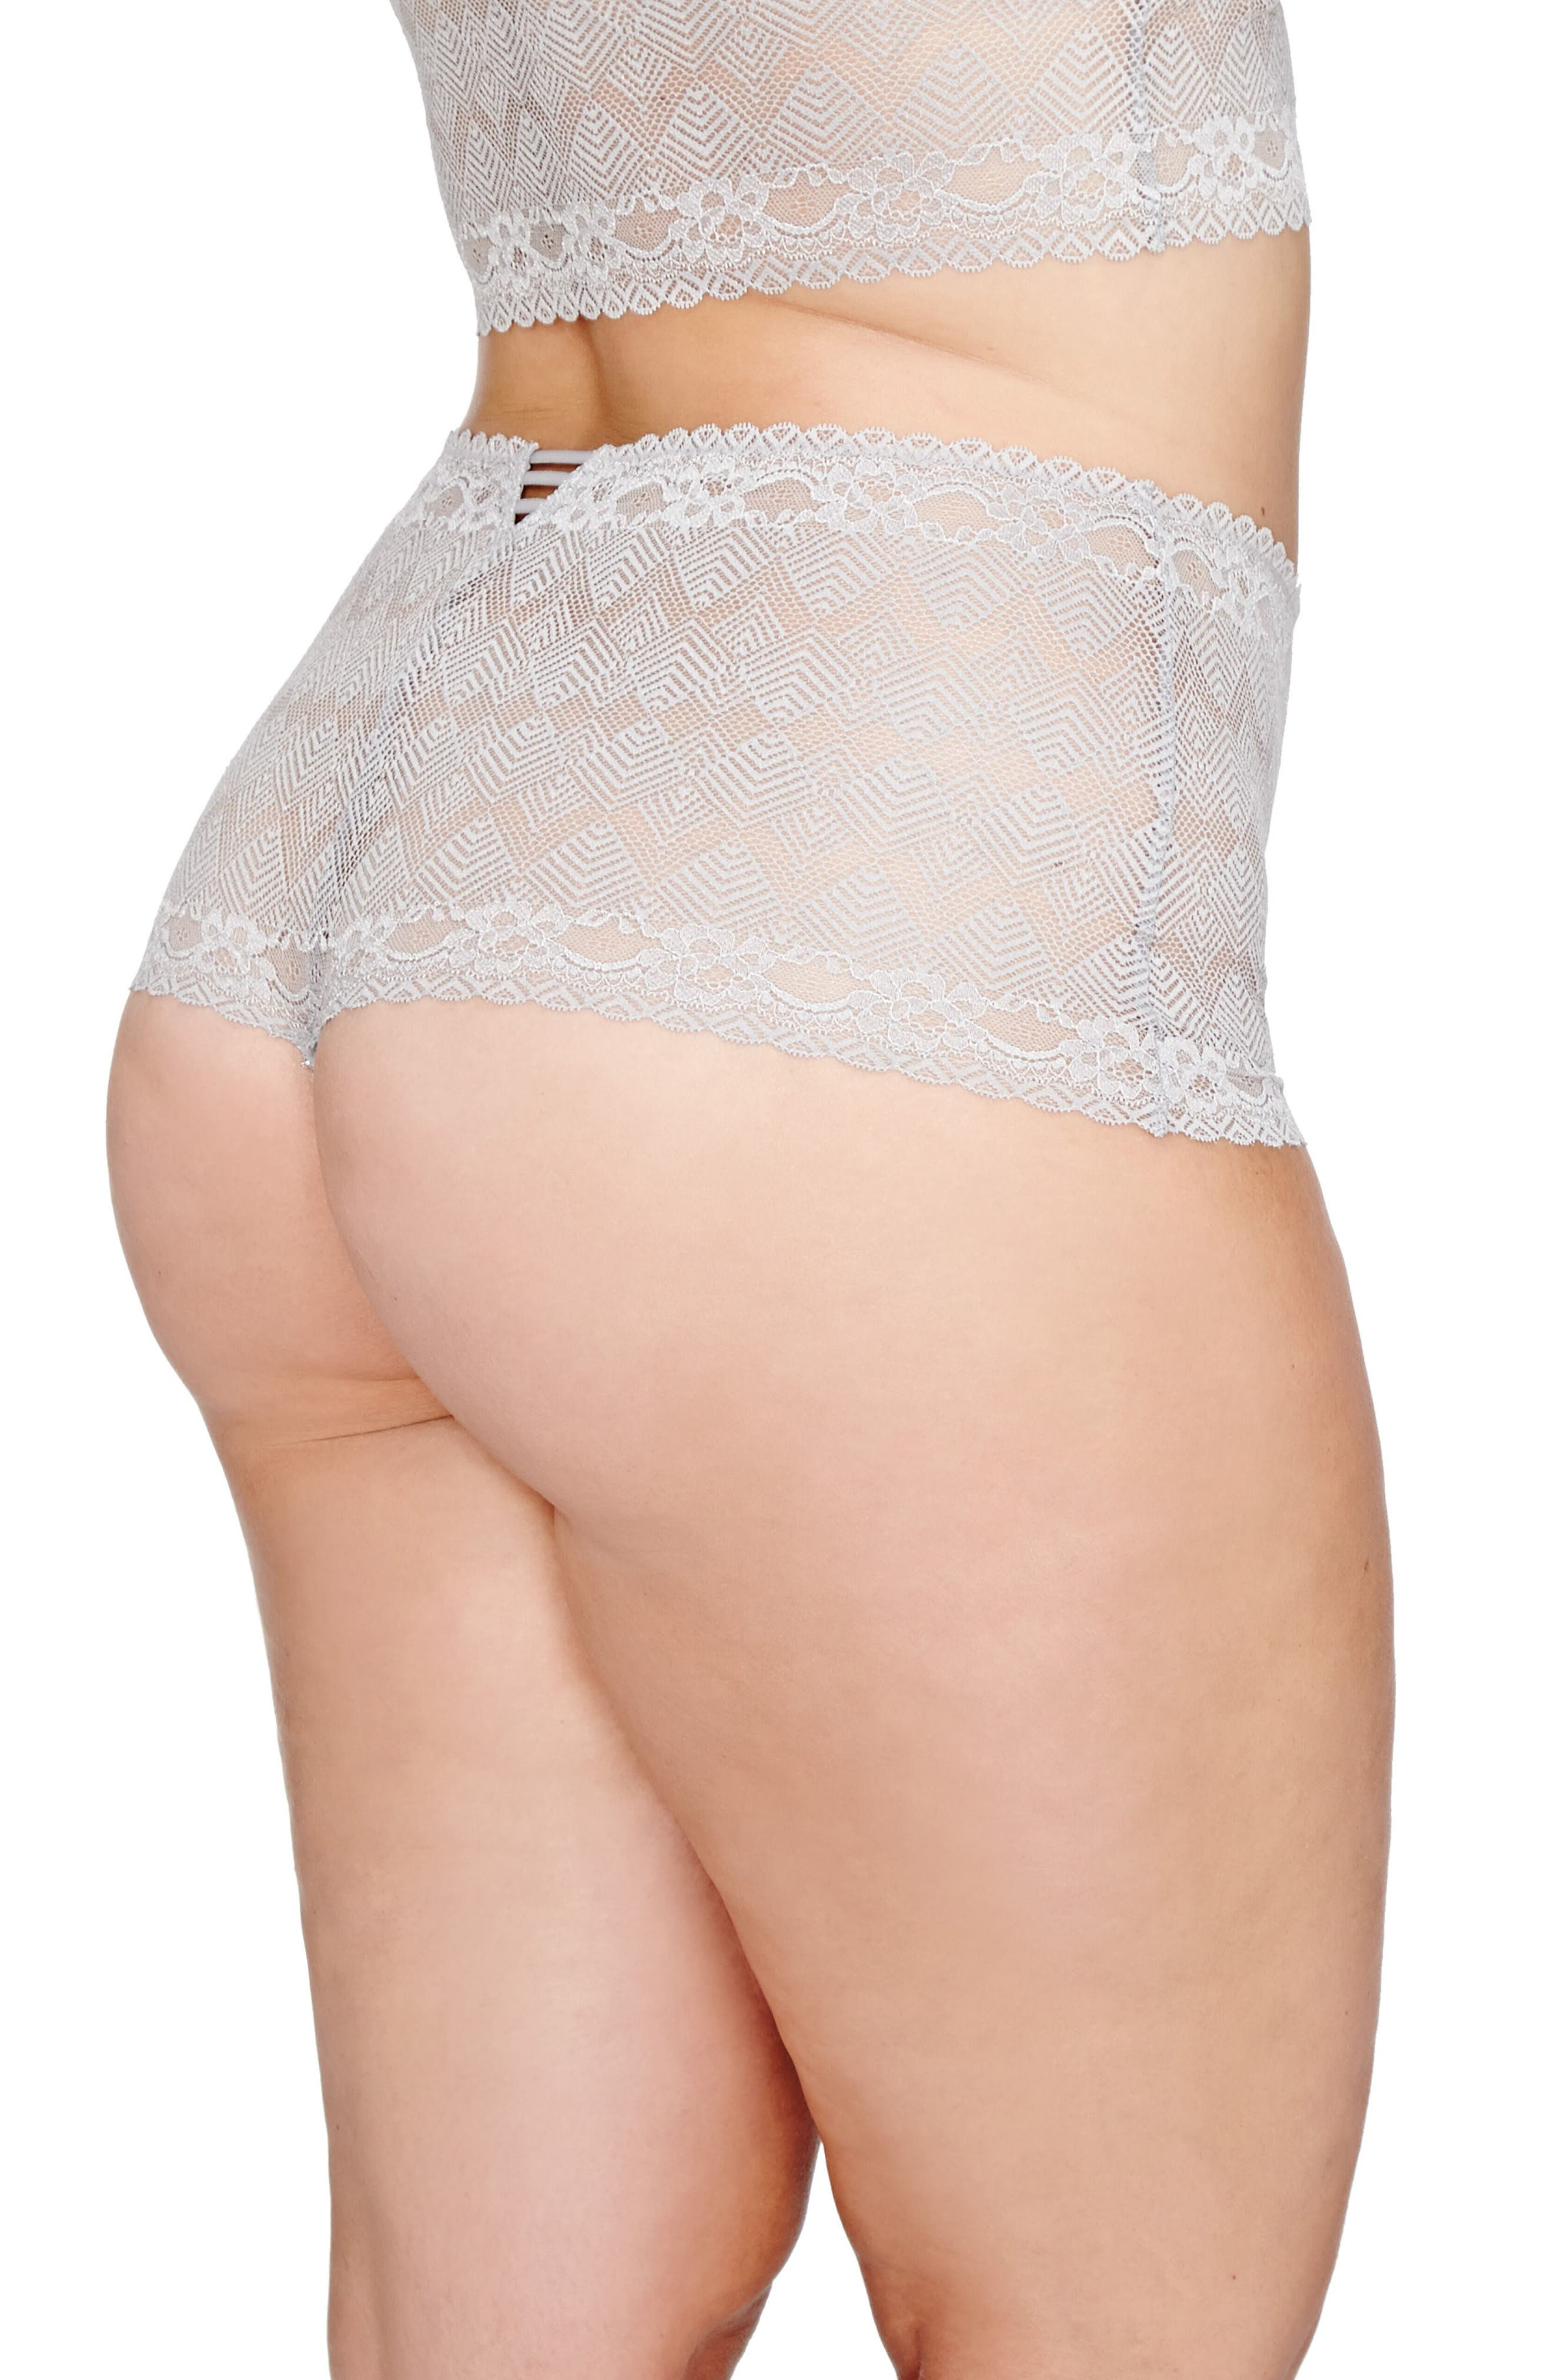 Lace Thong,                             Alternate thumbnail 3, color,                             040